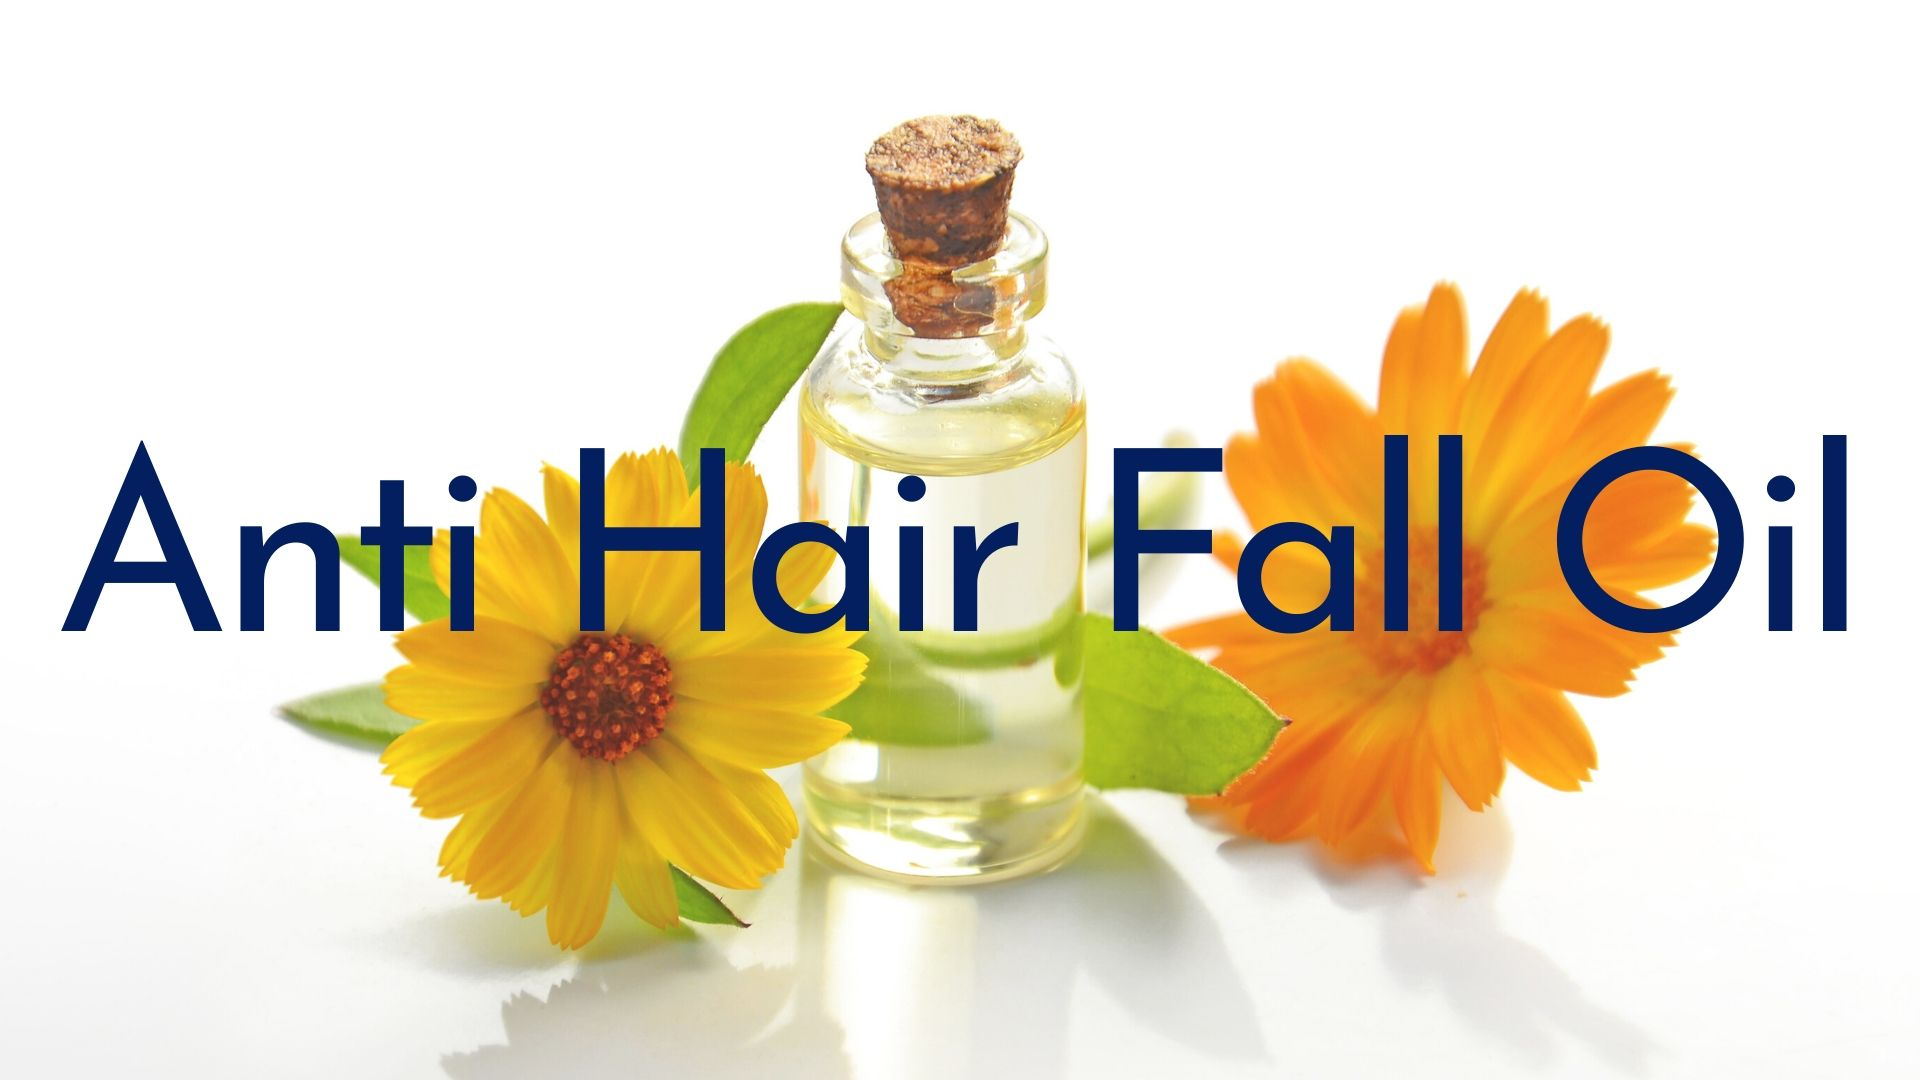 Anti Hair Fall Oil